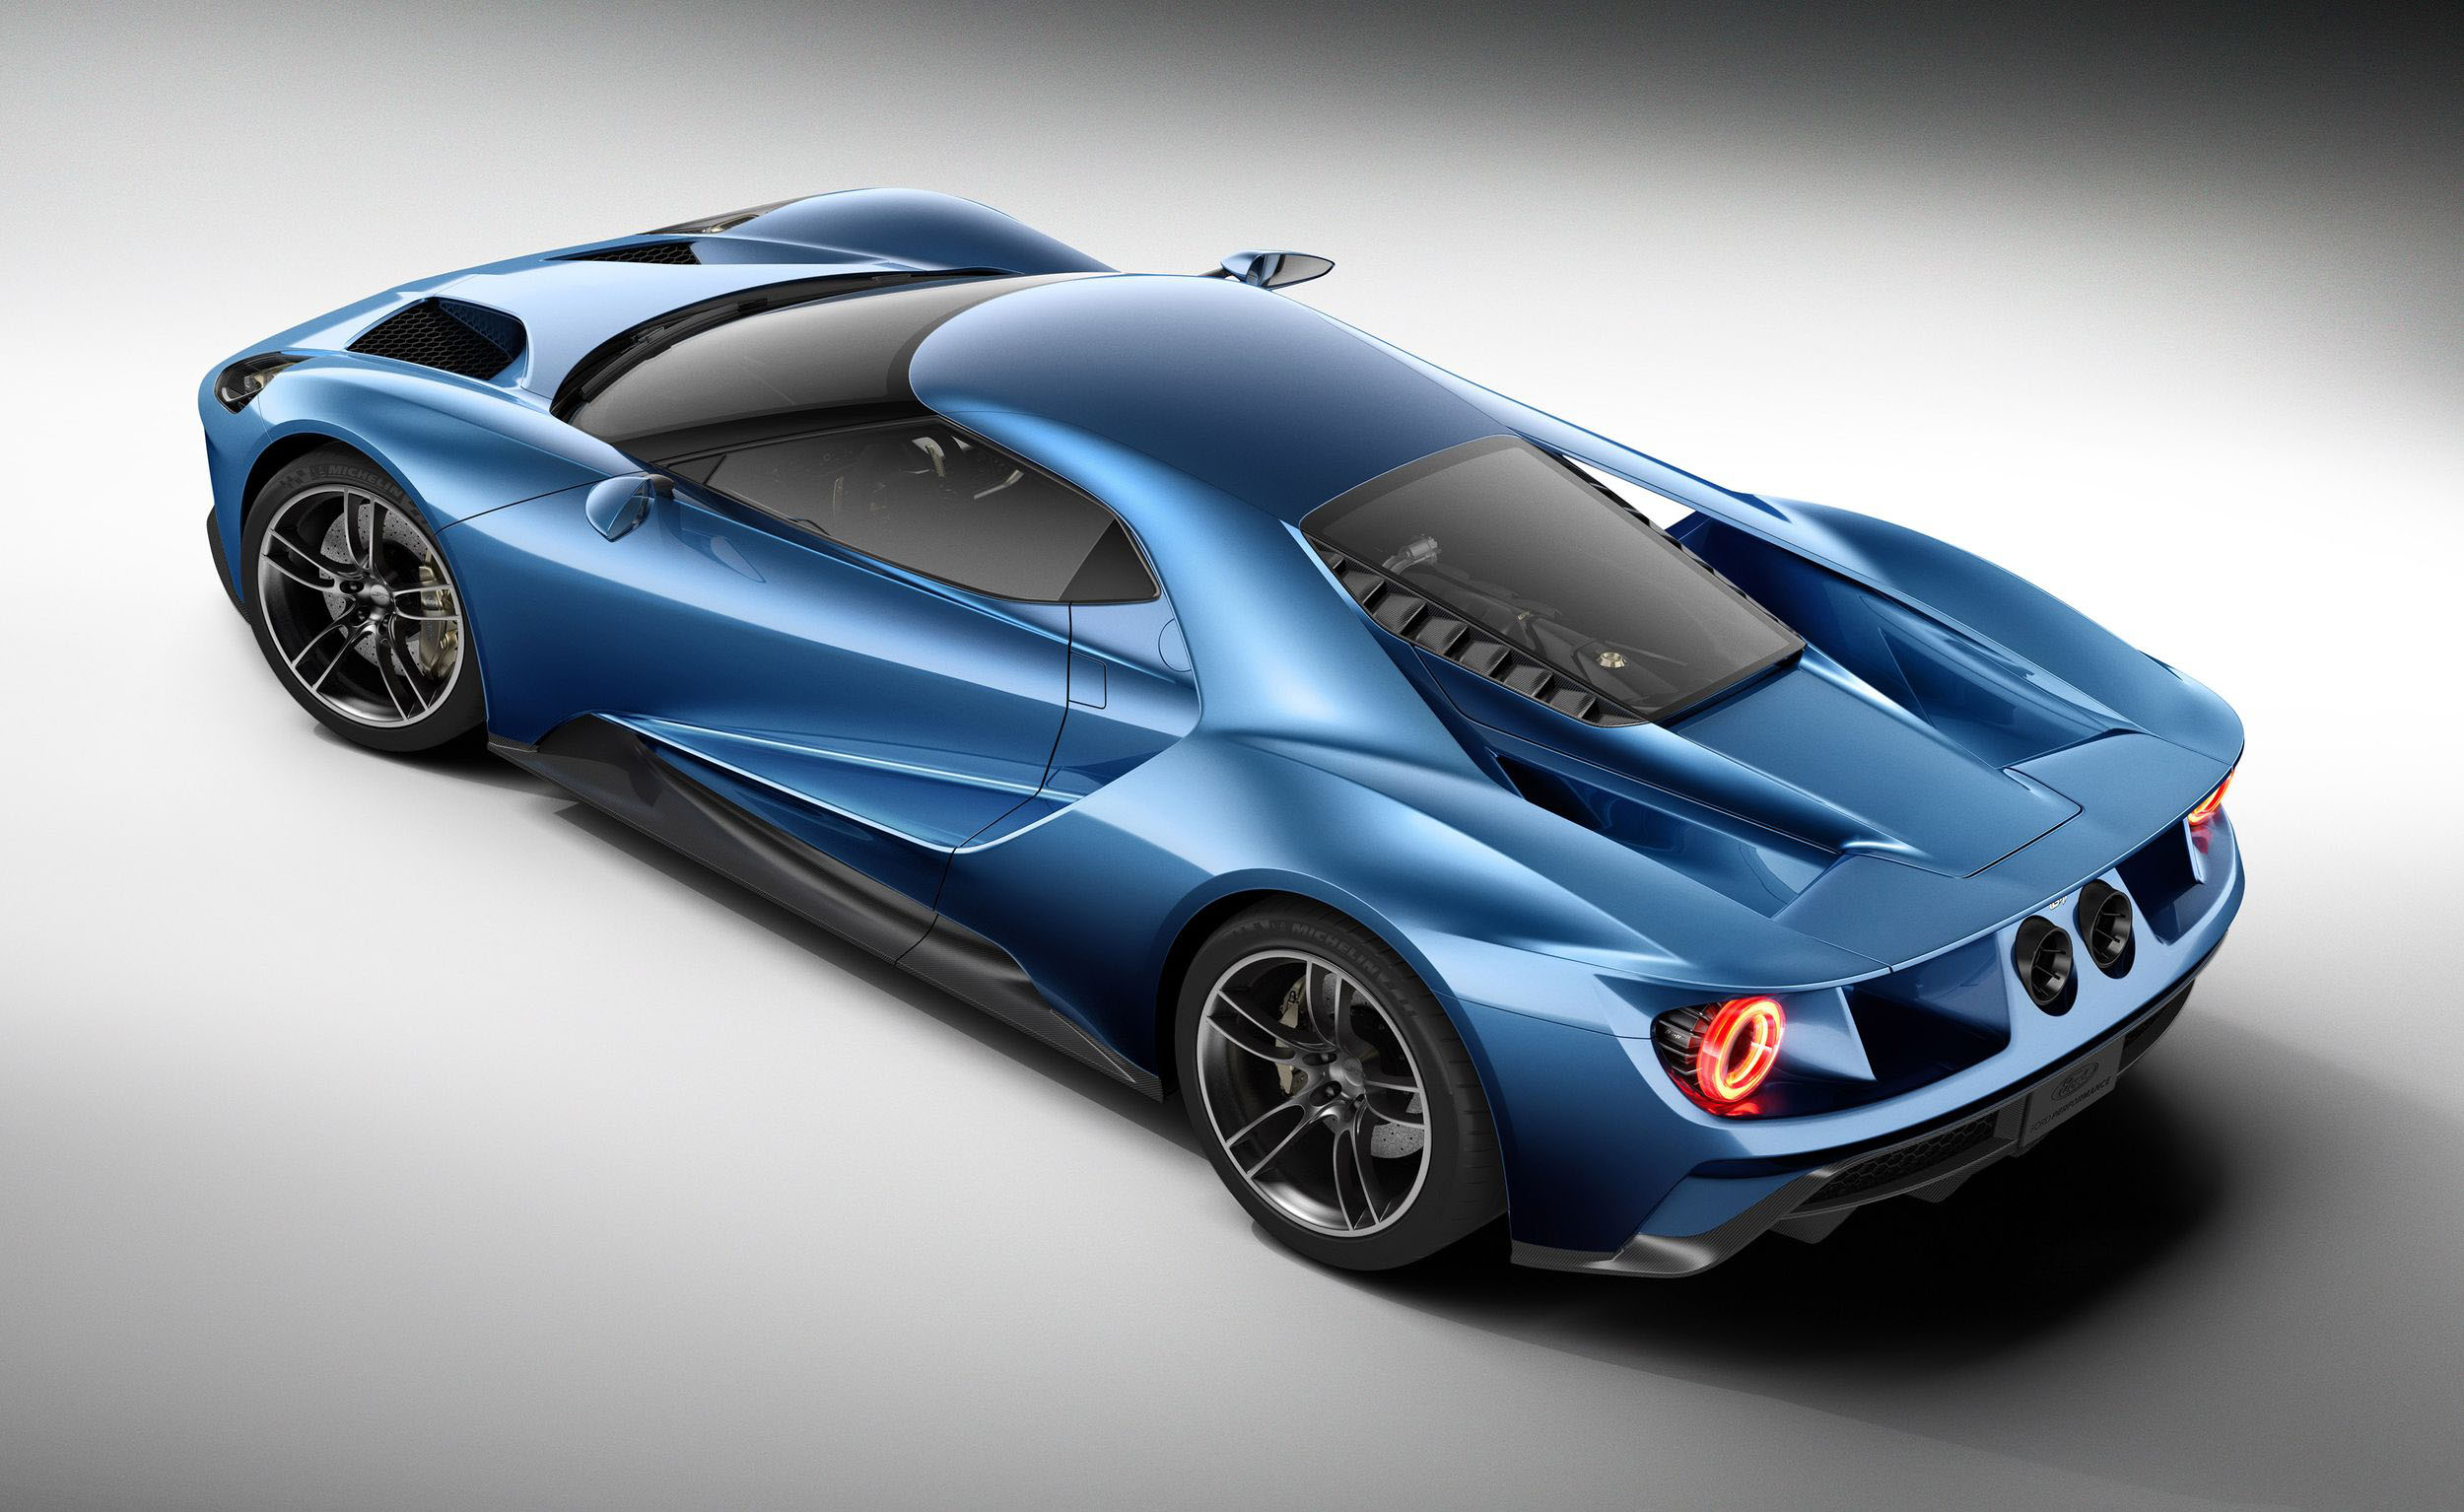 The all new carbon fiber Ford GT 2016 picture supercar will feature a 2500x1534